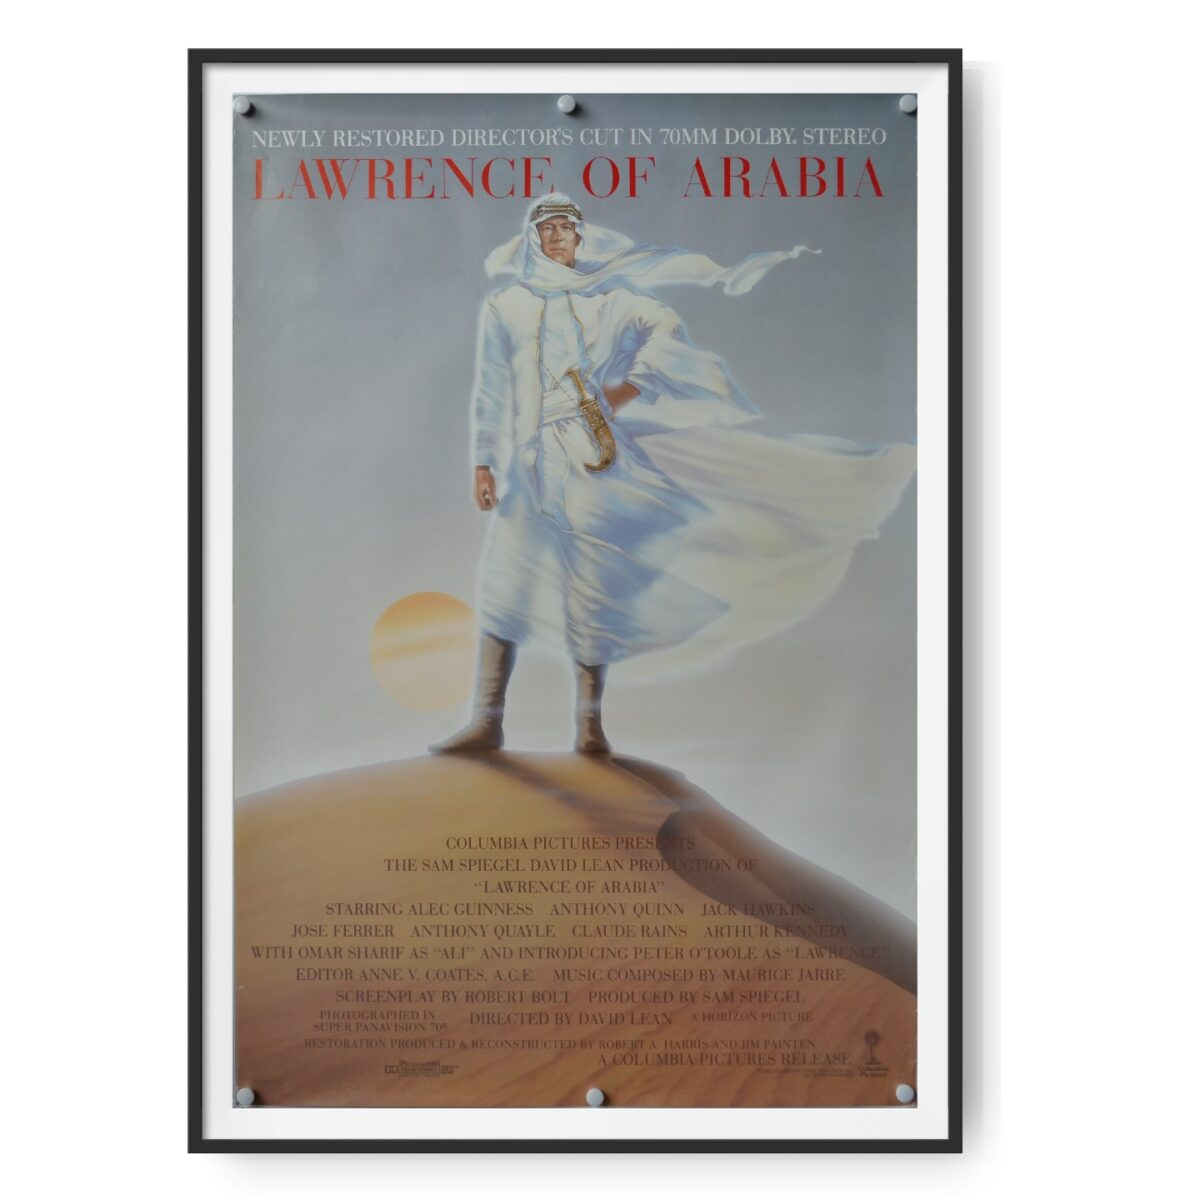 This US poster for Lawrence of Arabia show's the films hero in Bedouin clothes standing on a sand dune.